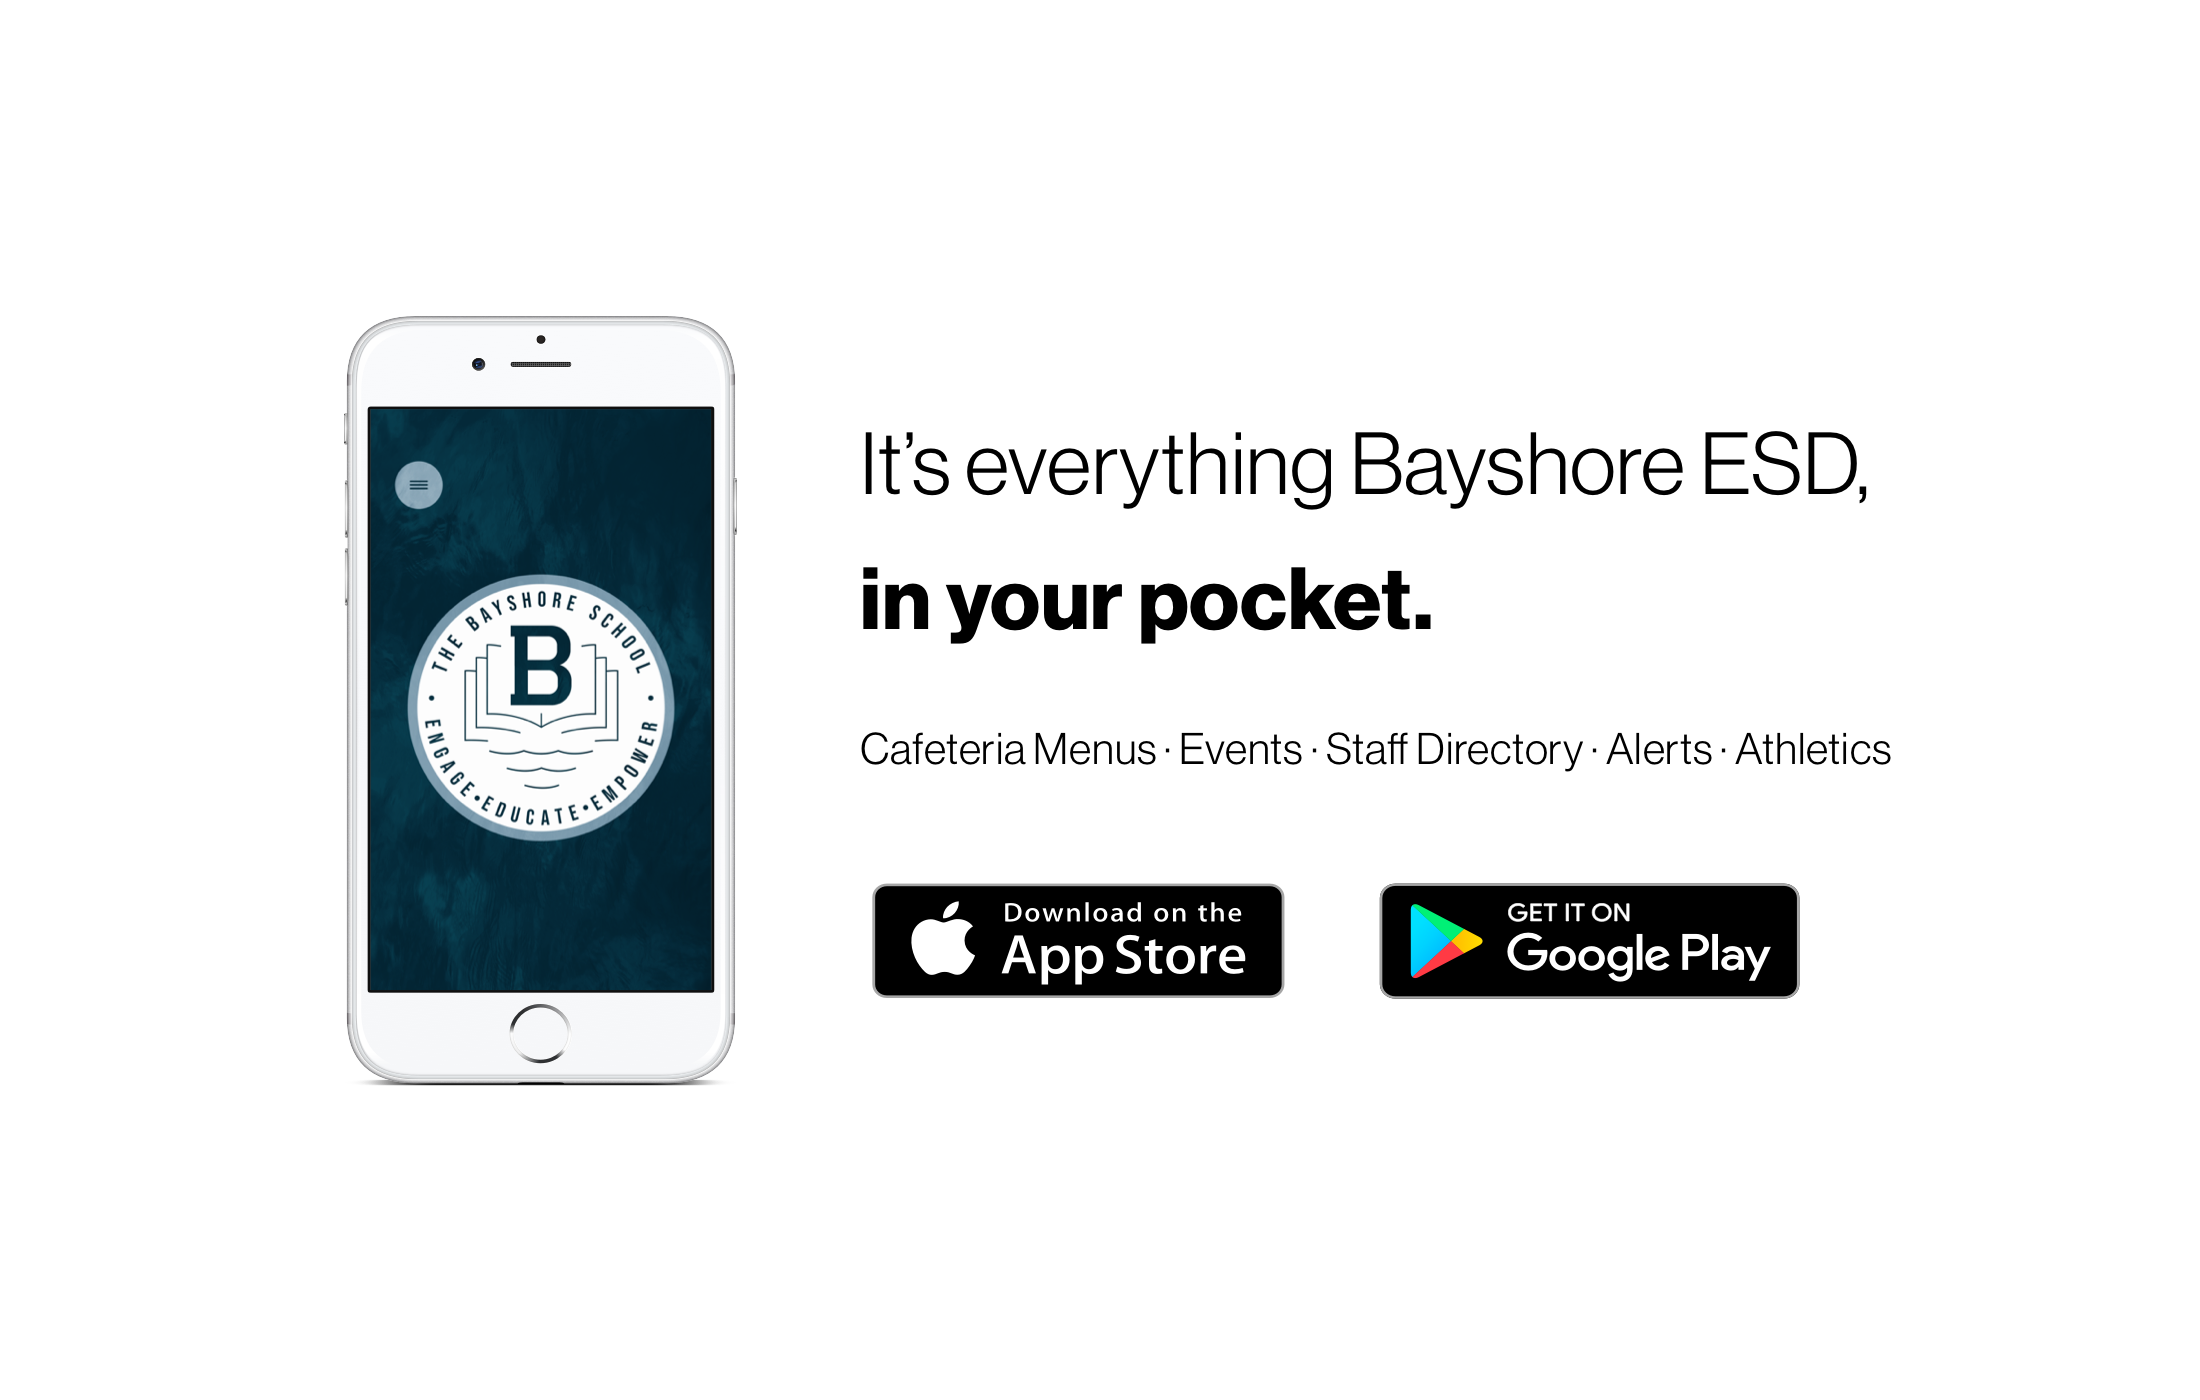 Download our new app! It's everything Bayshore ESD in your pocket.